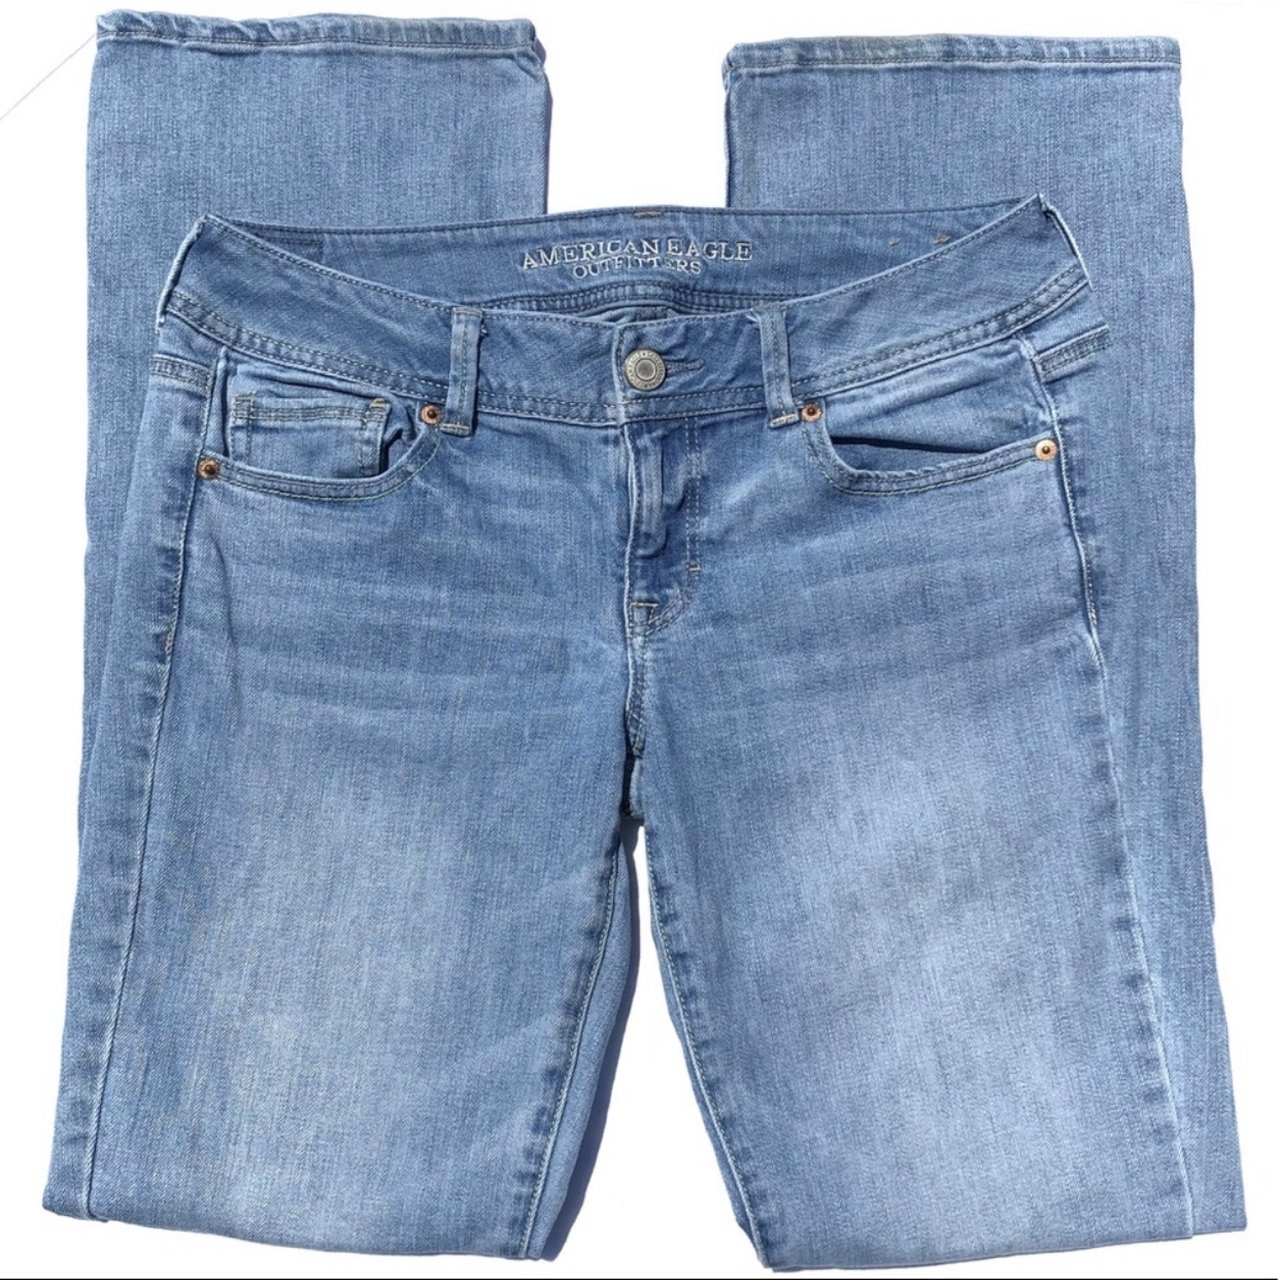 c68070ac828 @sahm_selling. last month. Robertsdale, United States. American Eagle  Outfitters Light Wash Bootcut Denim Jeans ...